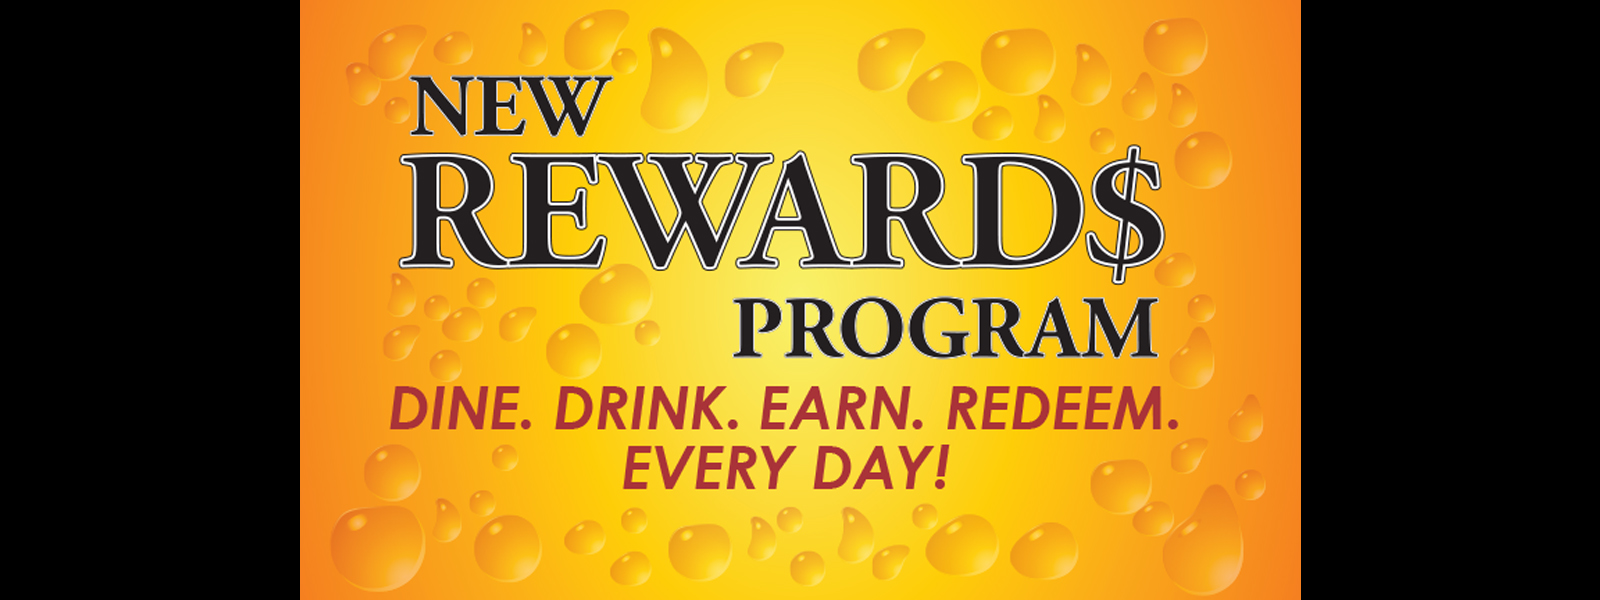 TheWellRewards